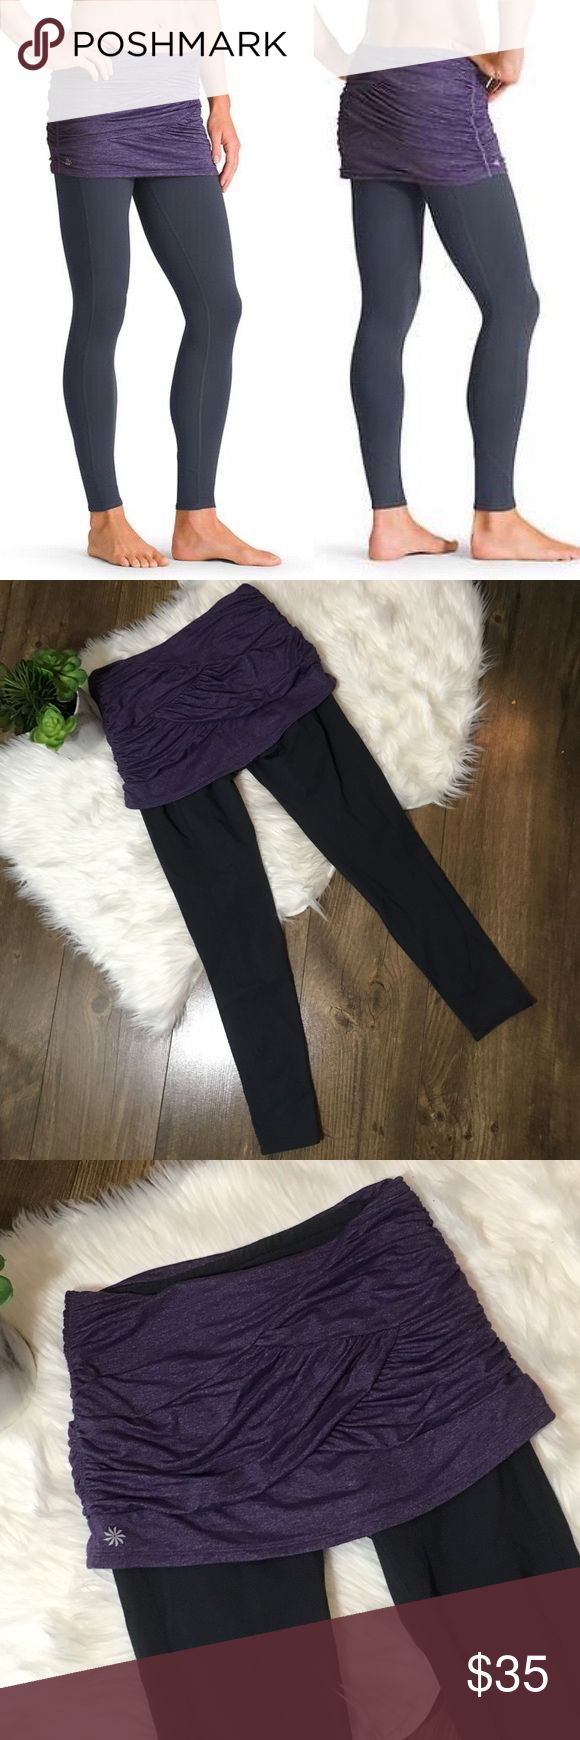 Athleta Skirts Got Legs 2 In 1 Skirt Legging Pants Still in great condition. There is fixed shirring on the sides of the skirt, Its designed to flatter everybody and they also have a seamless design to be non-chafing. style # is 930292 and they retail for $89. Athleta Pants Leggings